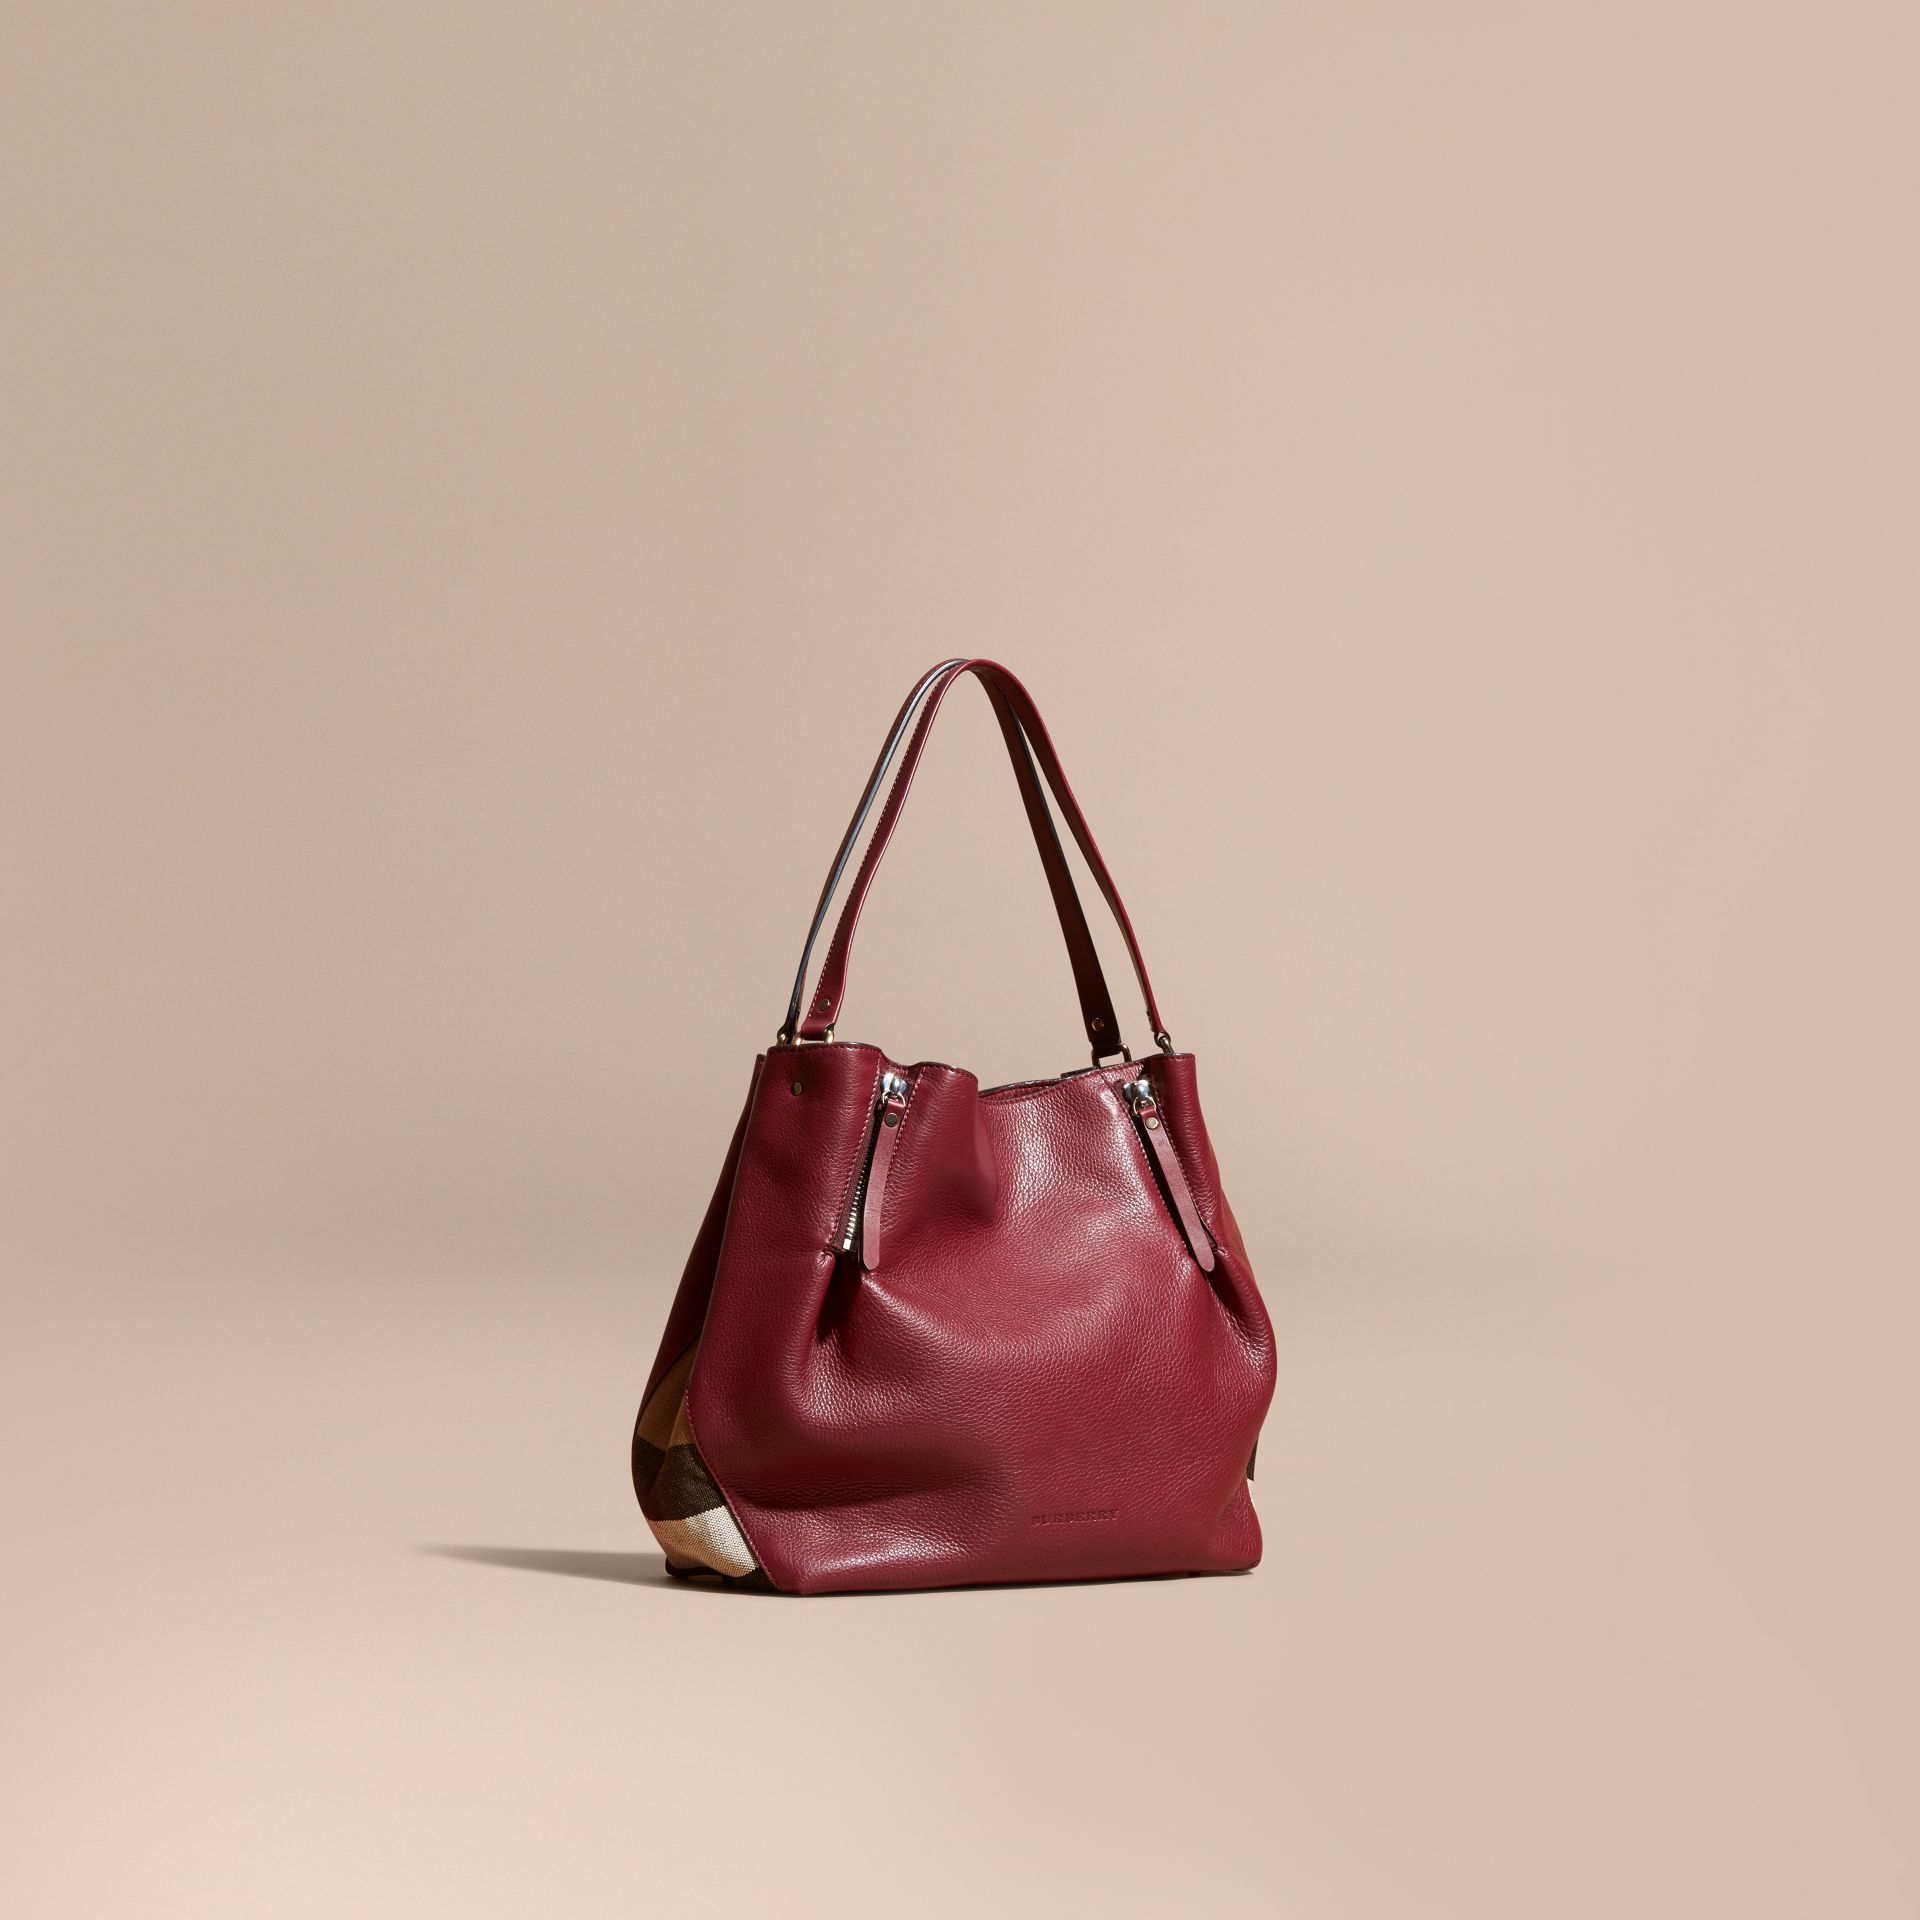 Rouge bourgogne Sac tote medium en cuir orné de touches check - photo de la galerie 1